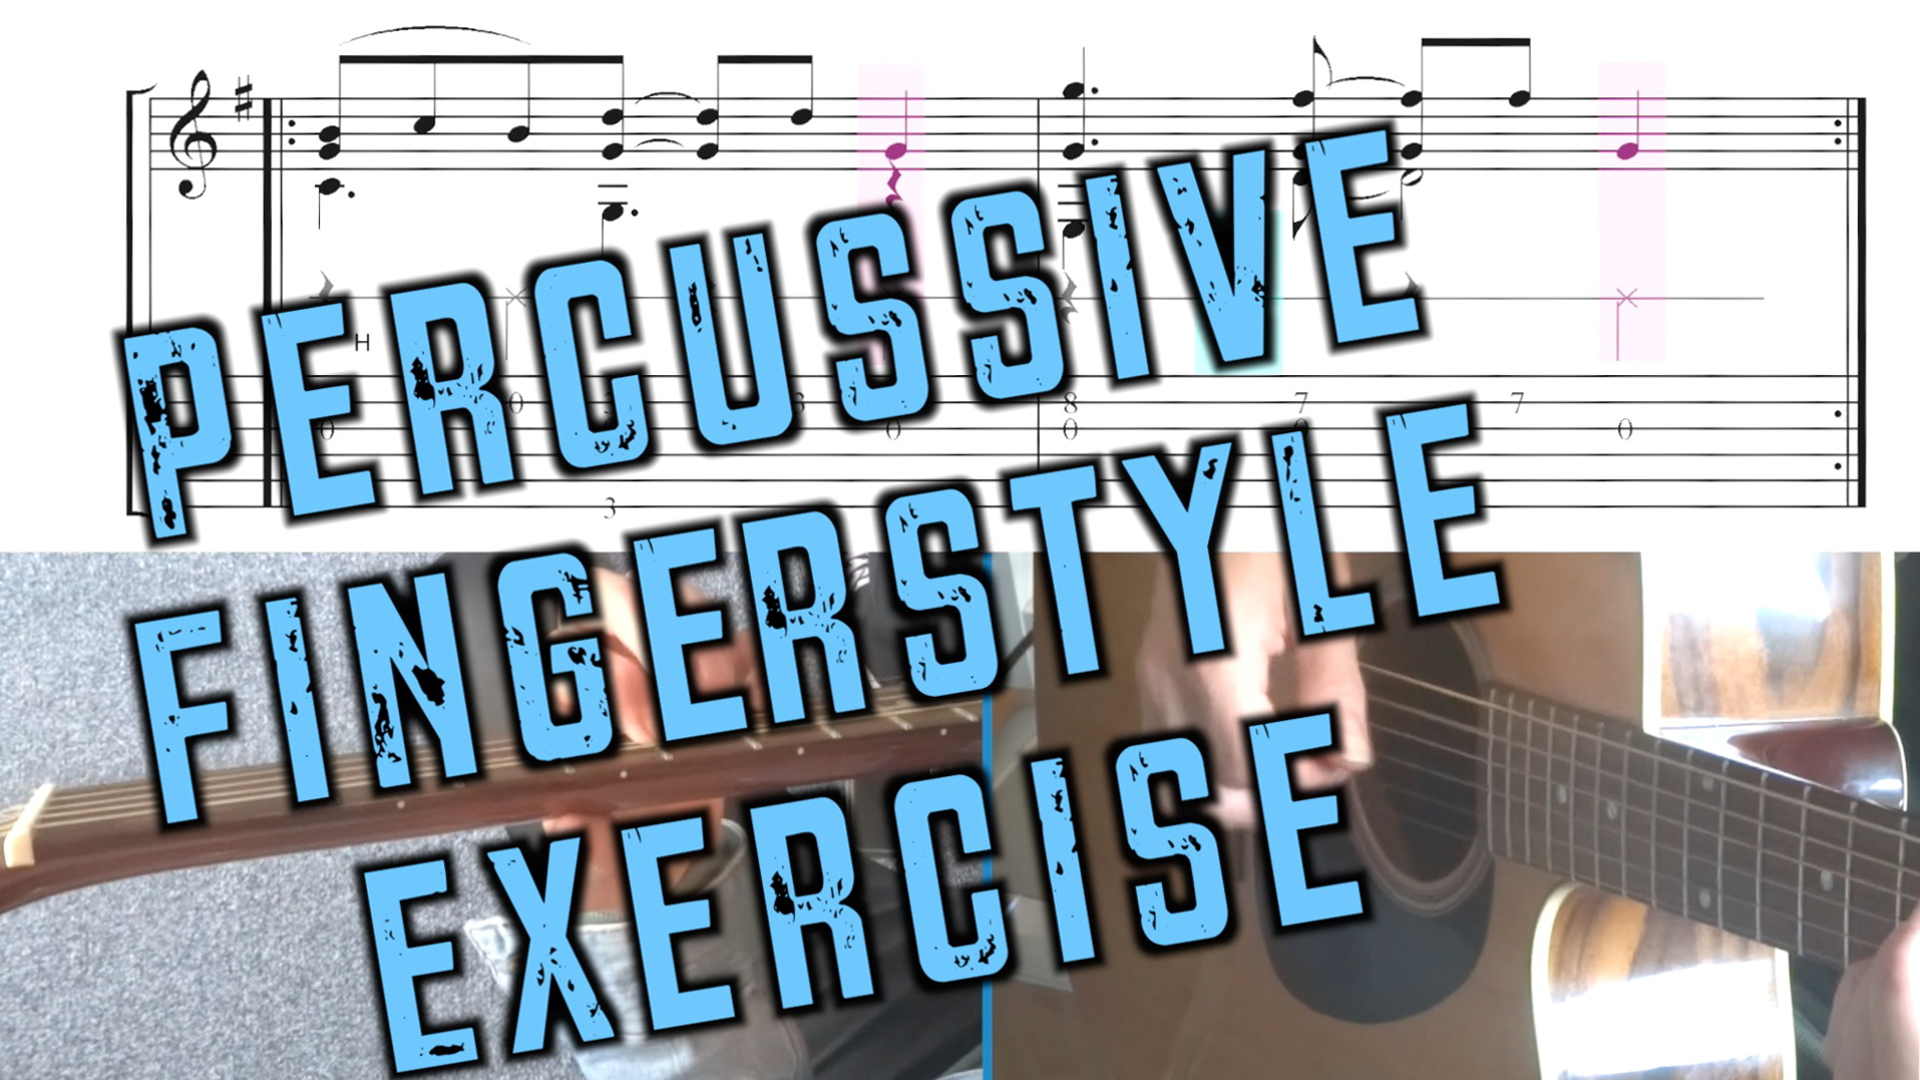 Percussive Fingerstyle Exercise - Fast Car Tracy Chapman GitaarvanHout